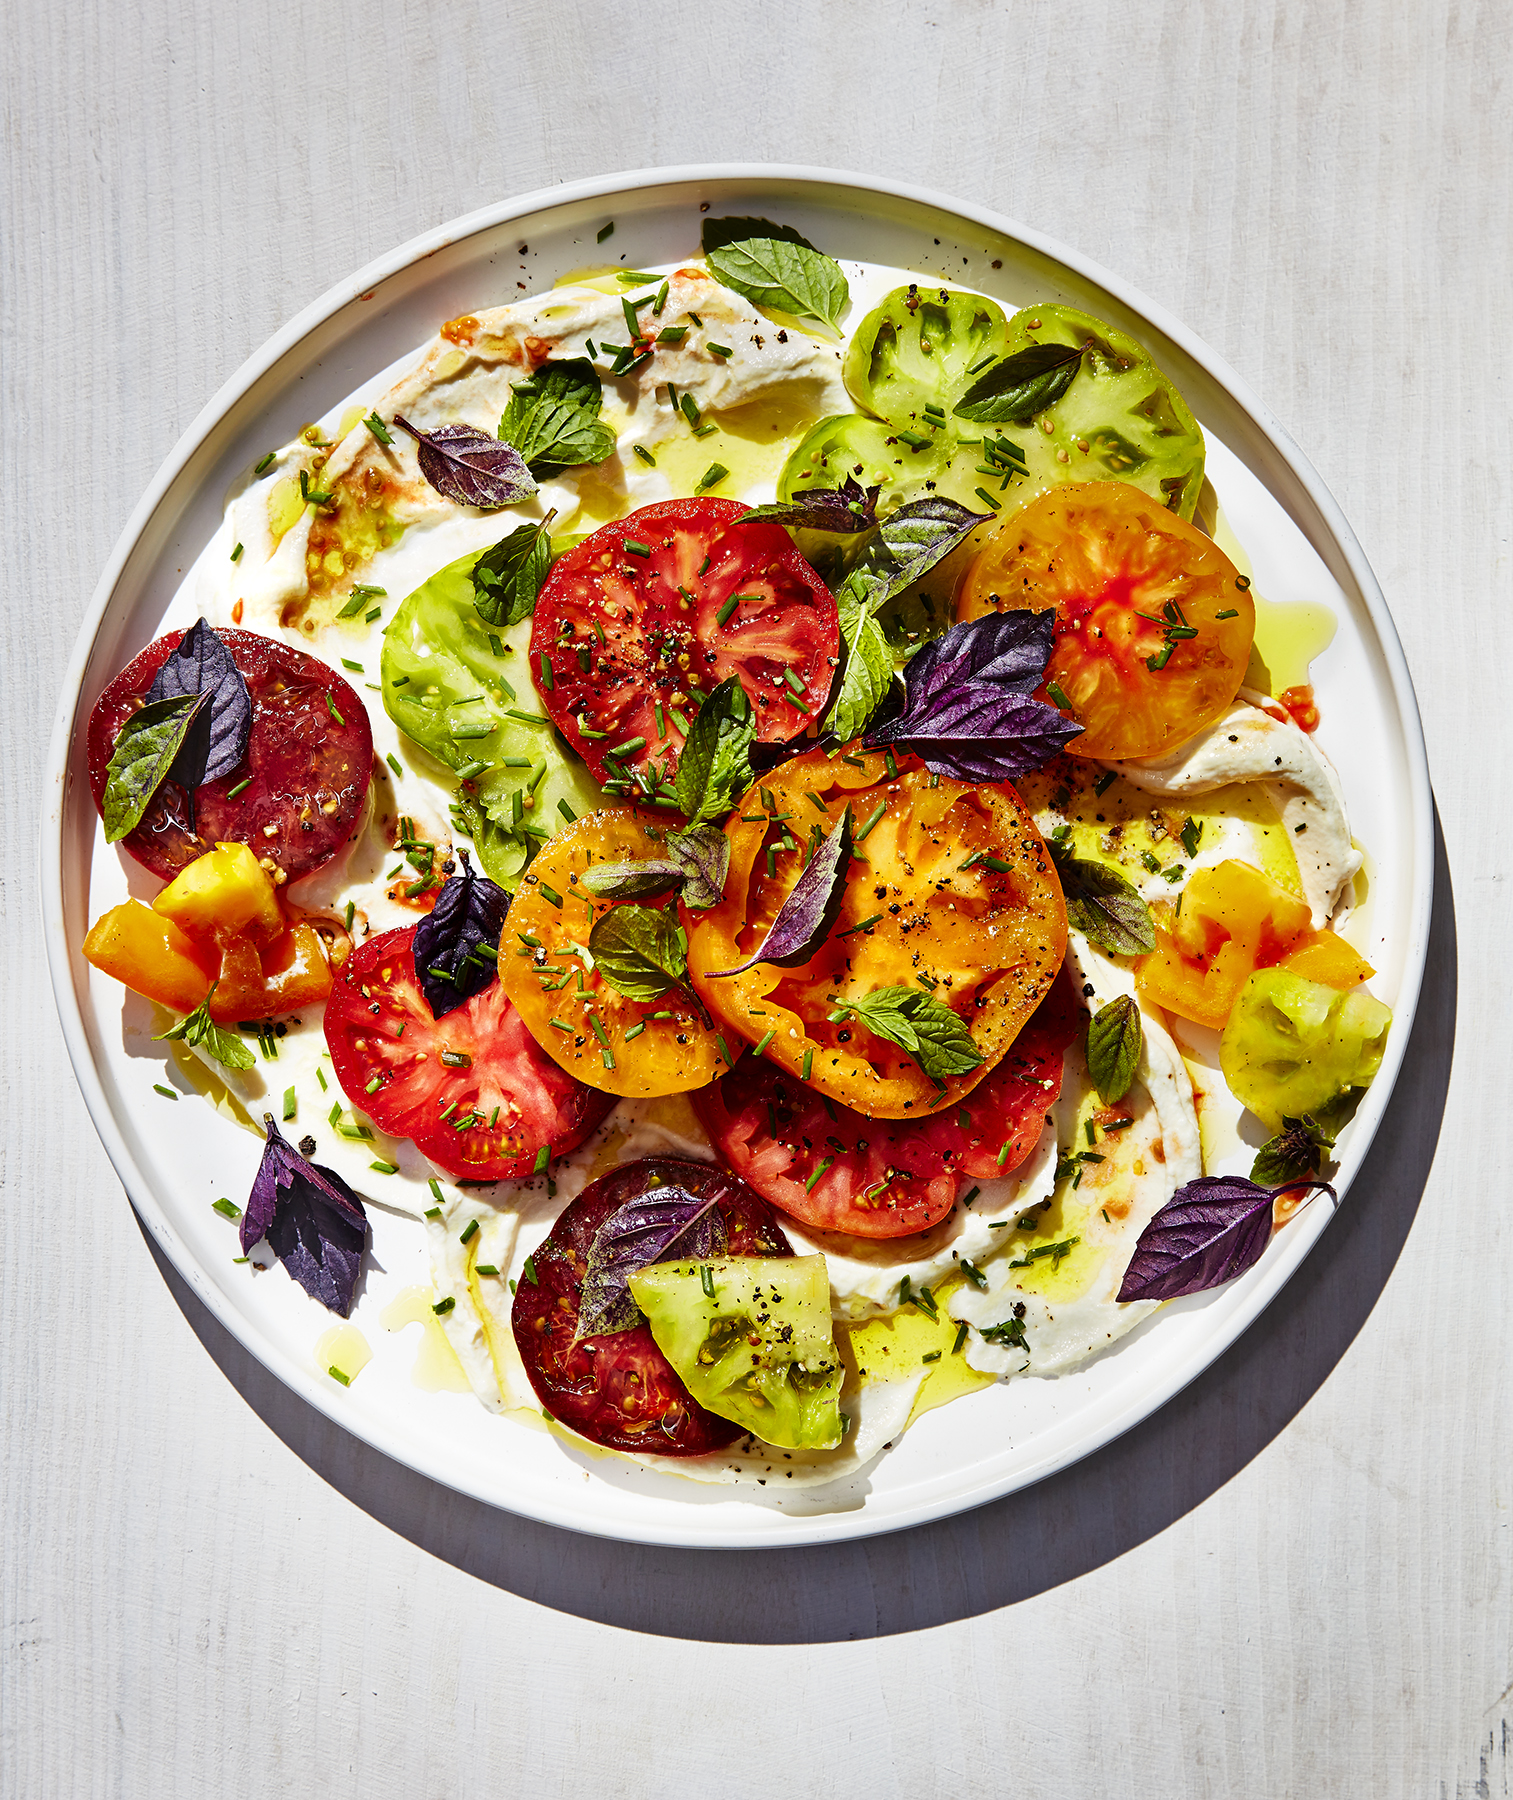 Tomato With Ricotta and Herbs